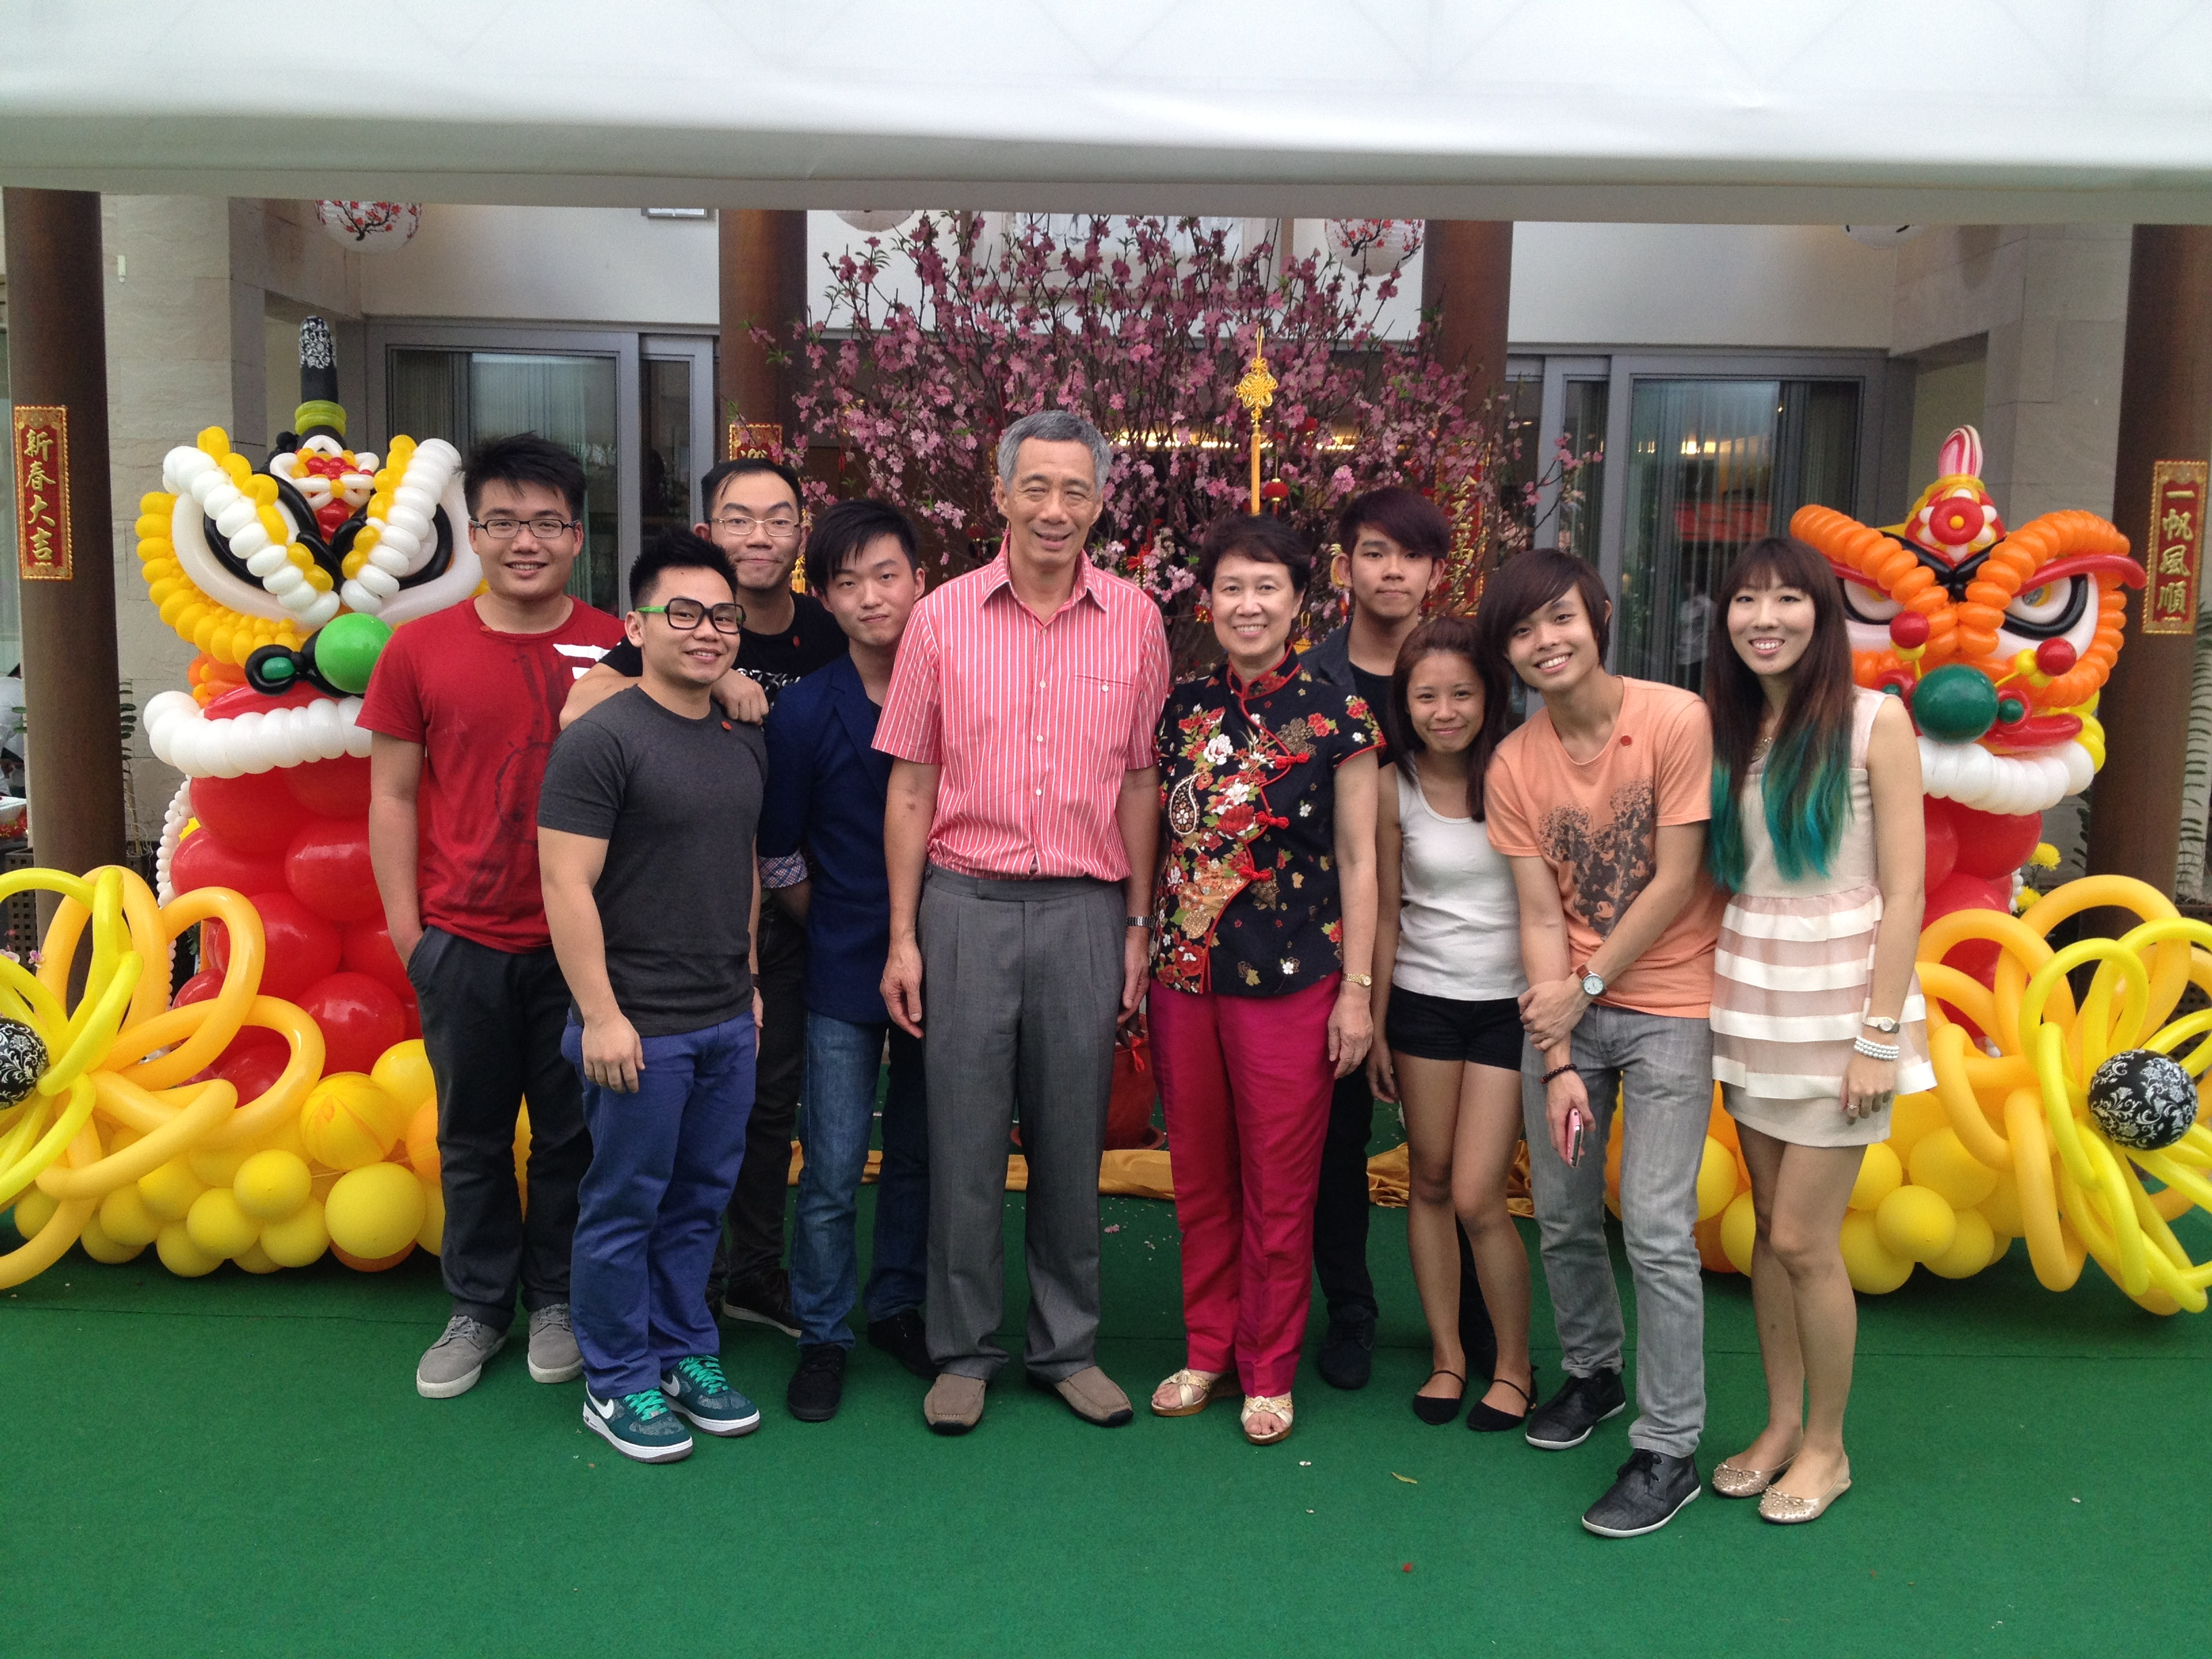 Singapore Balloon Artists with Prime Minister